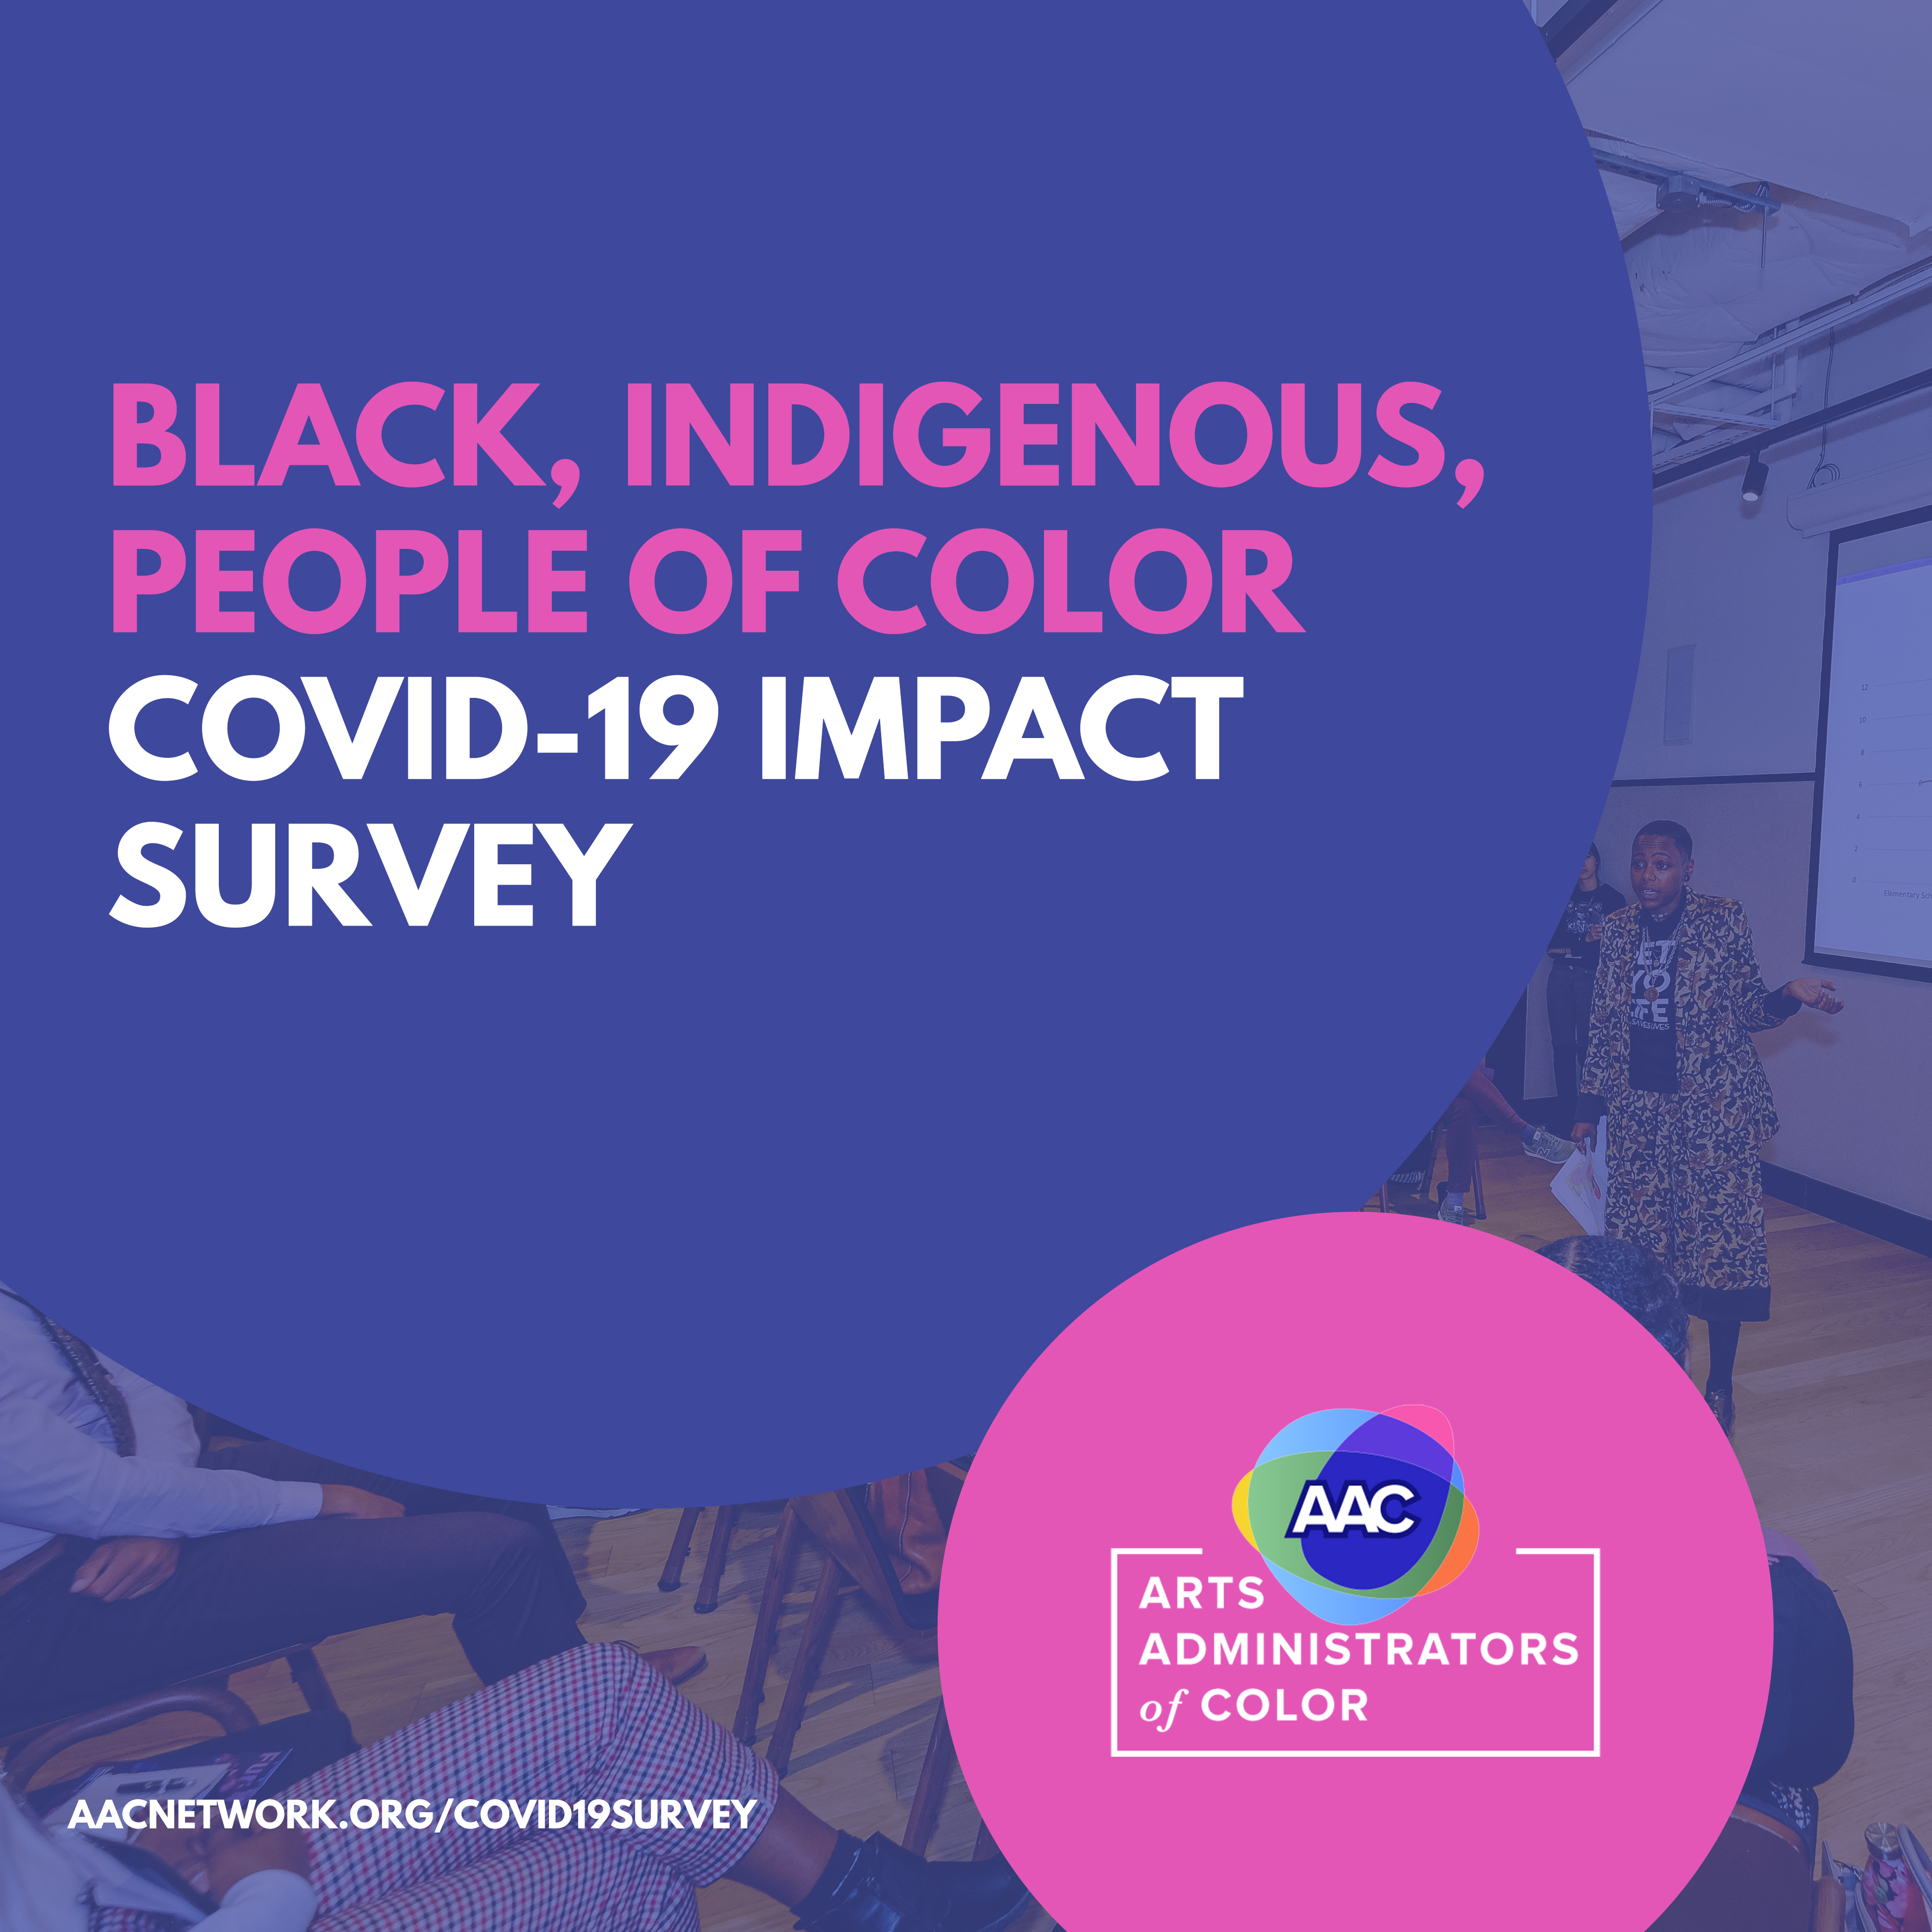 Text included in picture: Black, Indigenous, People of Color COVID-19 Impact Survey. ACCnetwork.org/covid19survey. Arts Administrators of Color. In background is a purple circle and a smaller pink circle and a photo with a purple overlay on it of a black woman giving a presentation to a group of seated people.